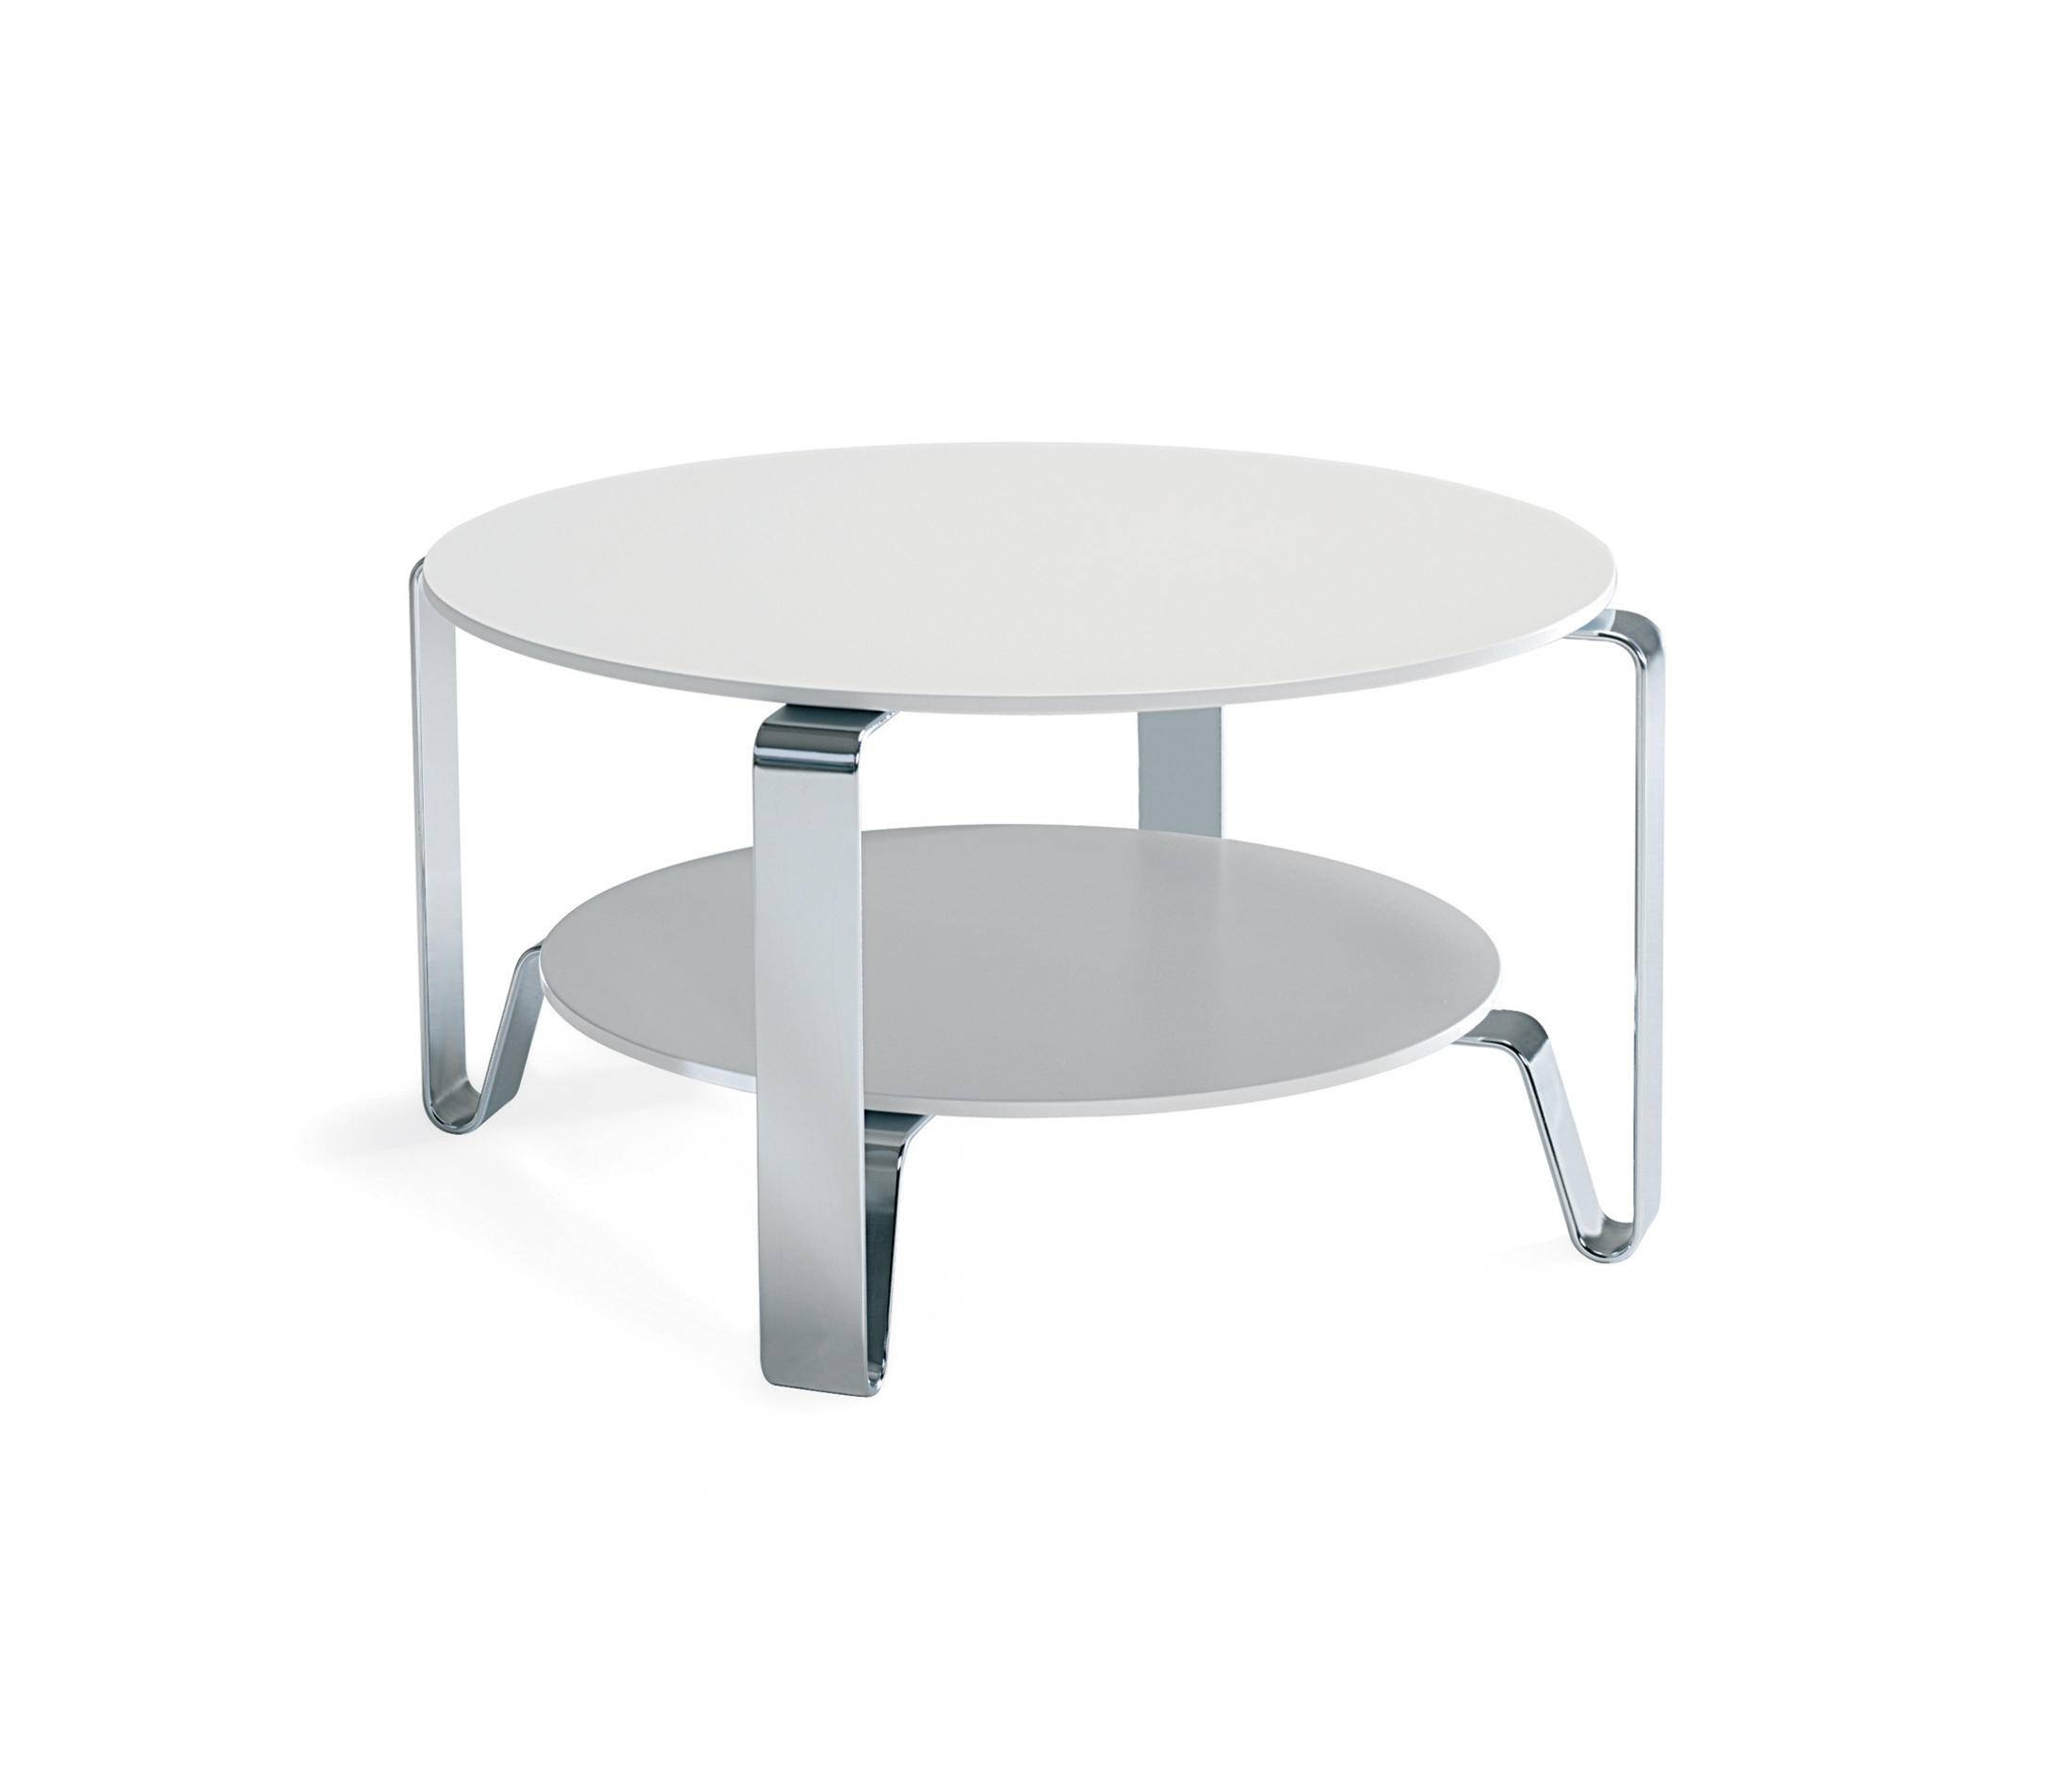 Cosmo Coffee Table - Lounge Tables From Materia | Architonic throughout Cosmo Coffee Tables (Image 4 of 30)